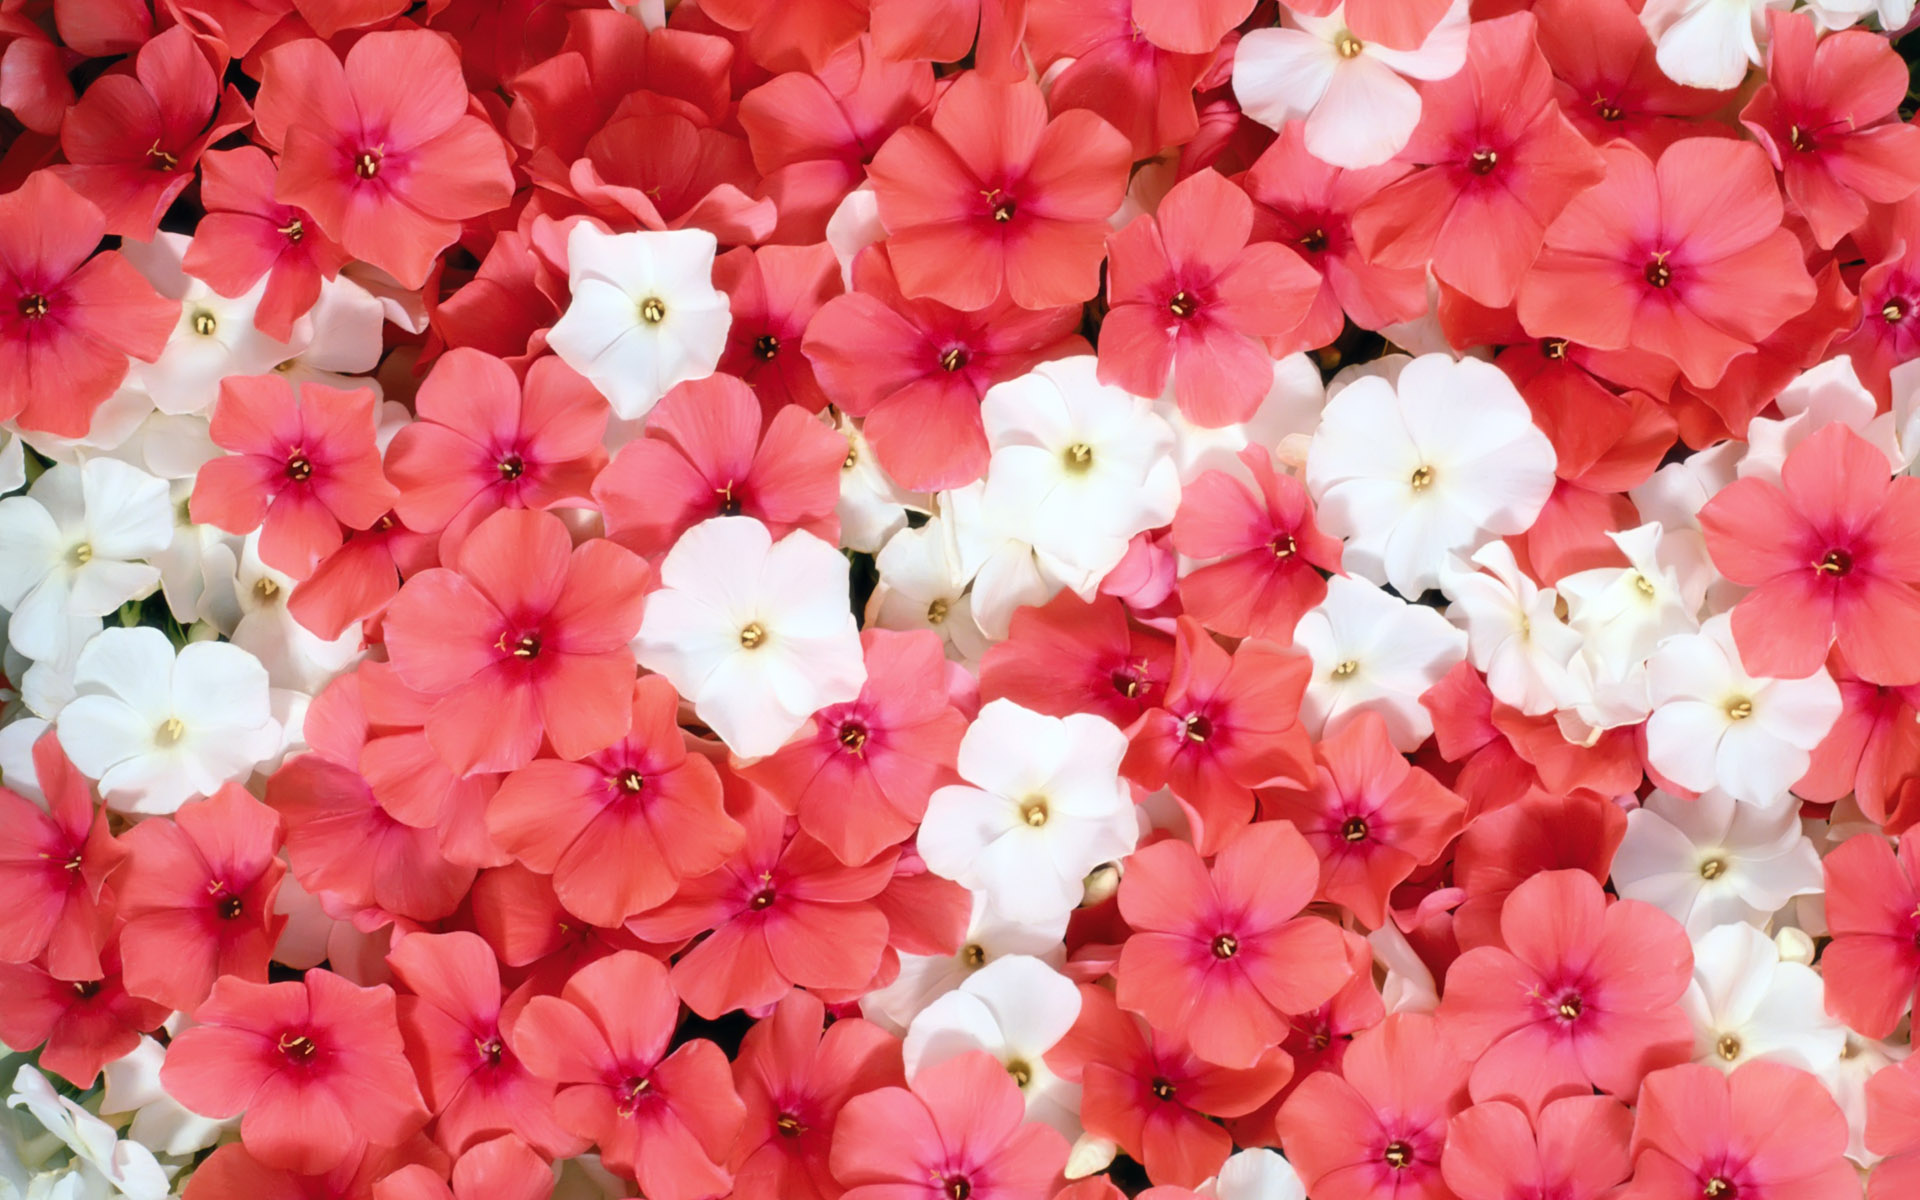 Pink And White Phlox Flowers Hd Wallpaper Background Image